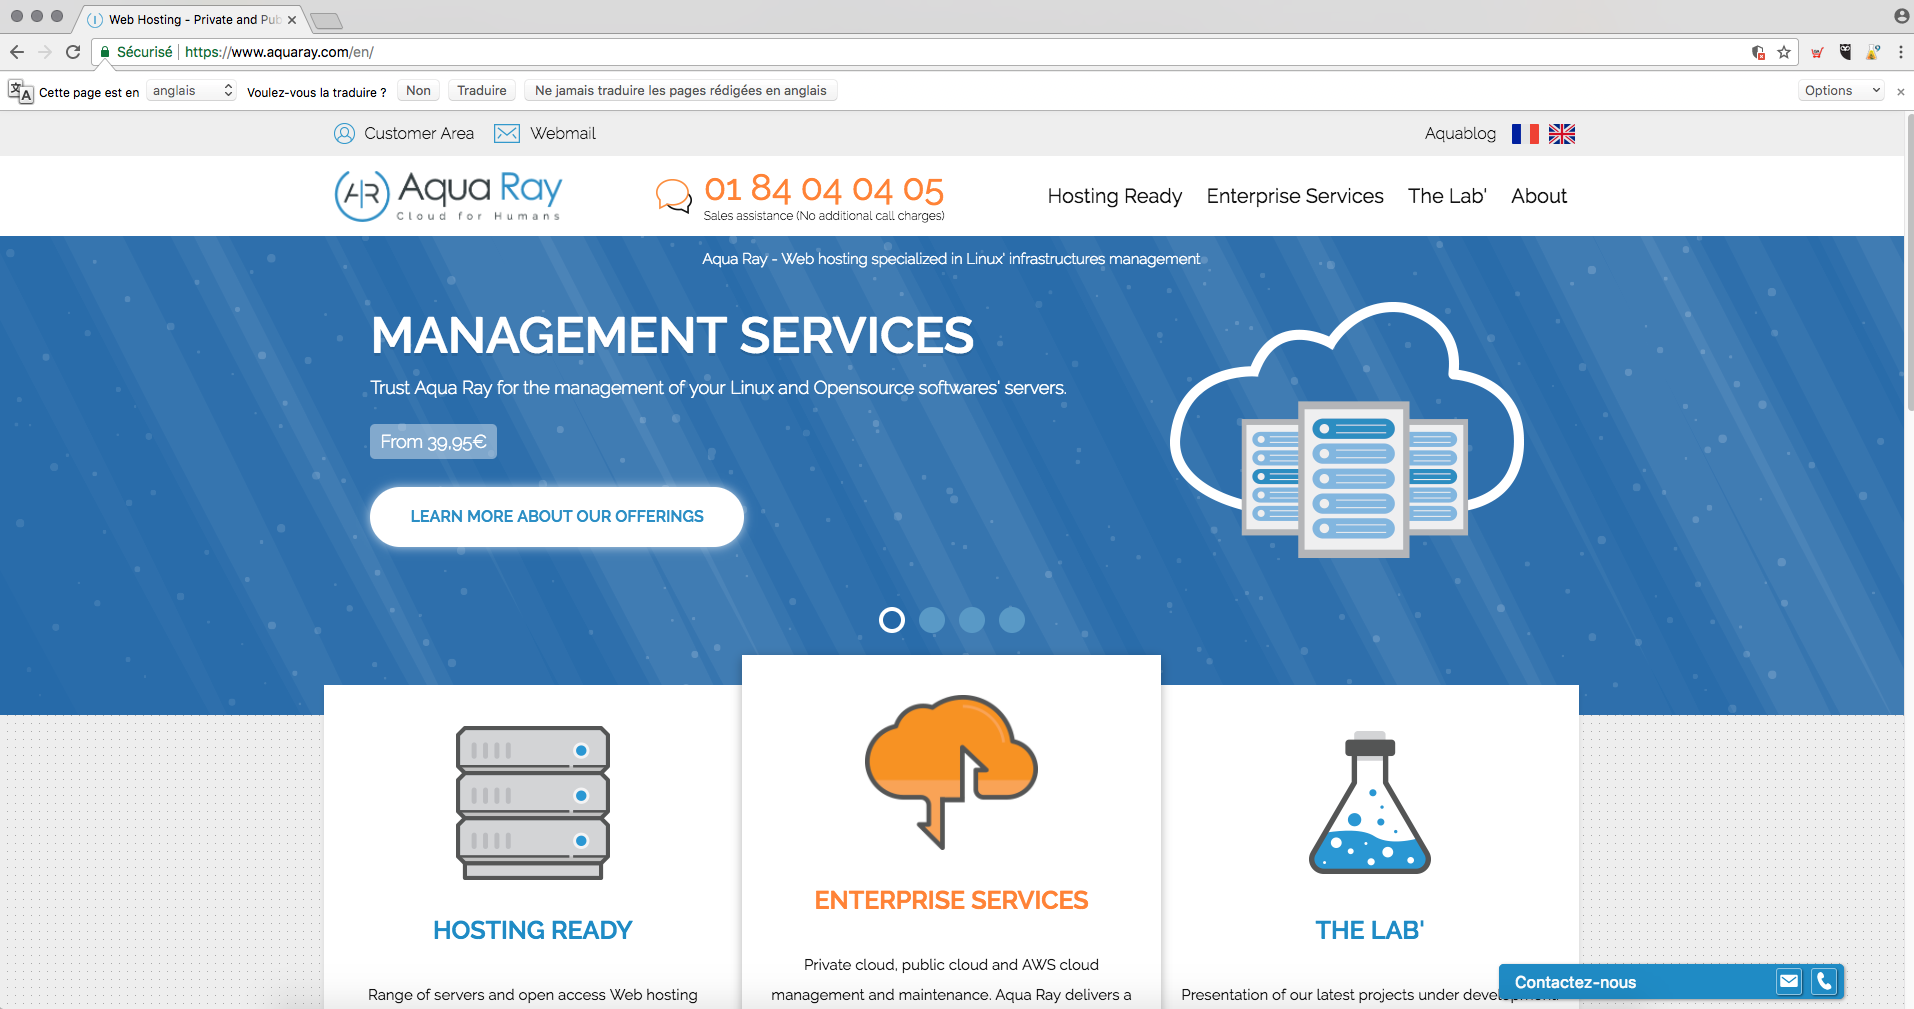 Aquaray homepage